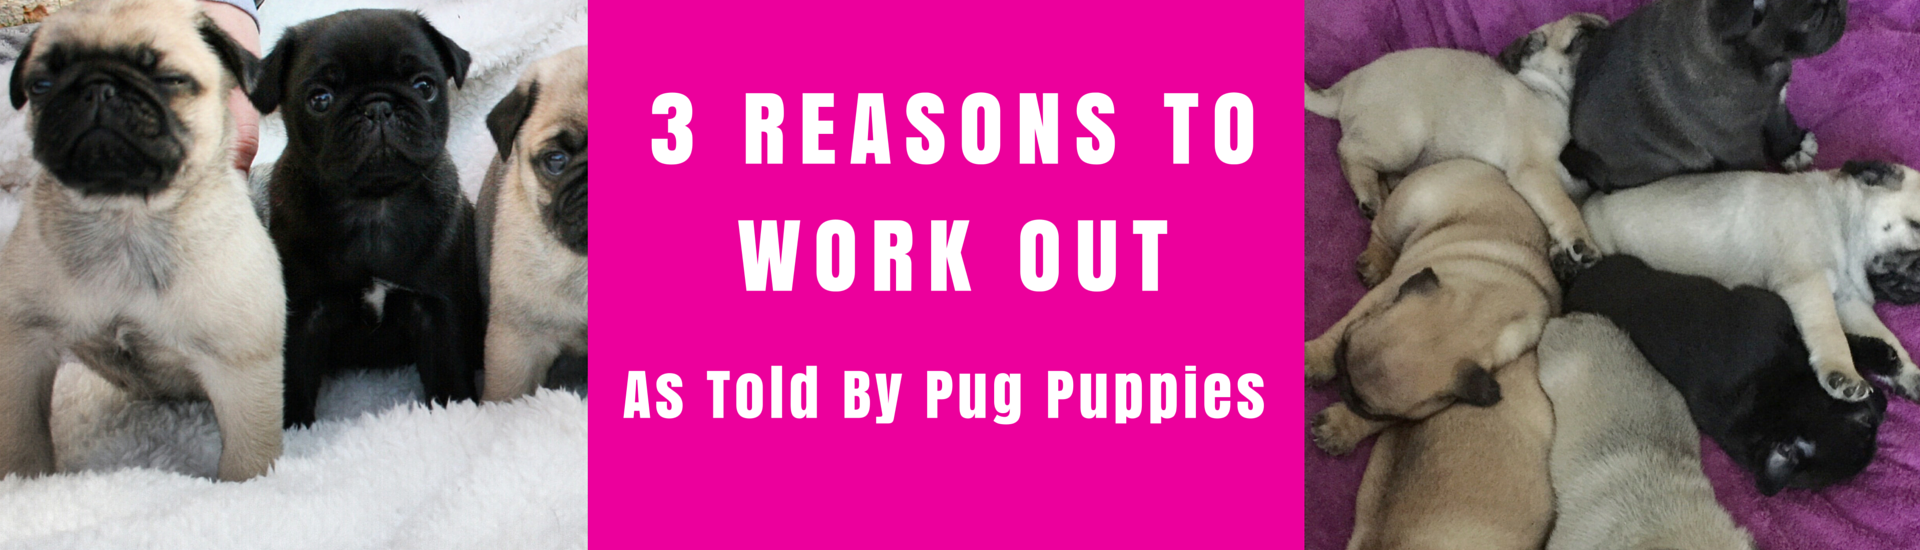 3 Reasons to Work Out